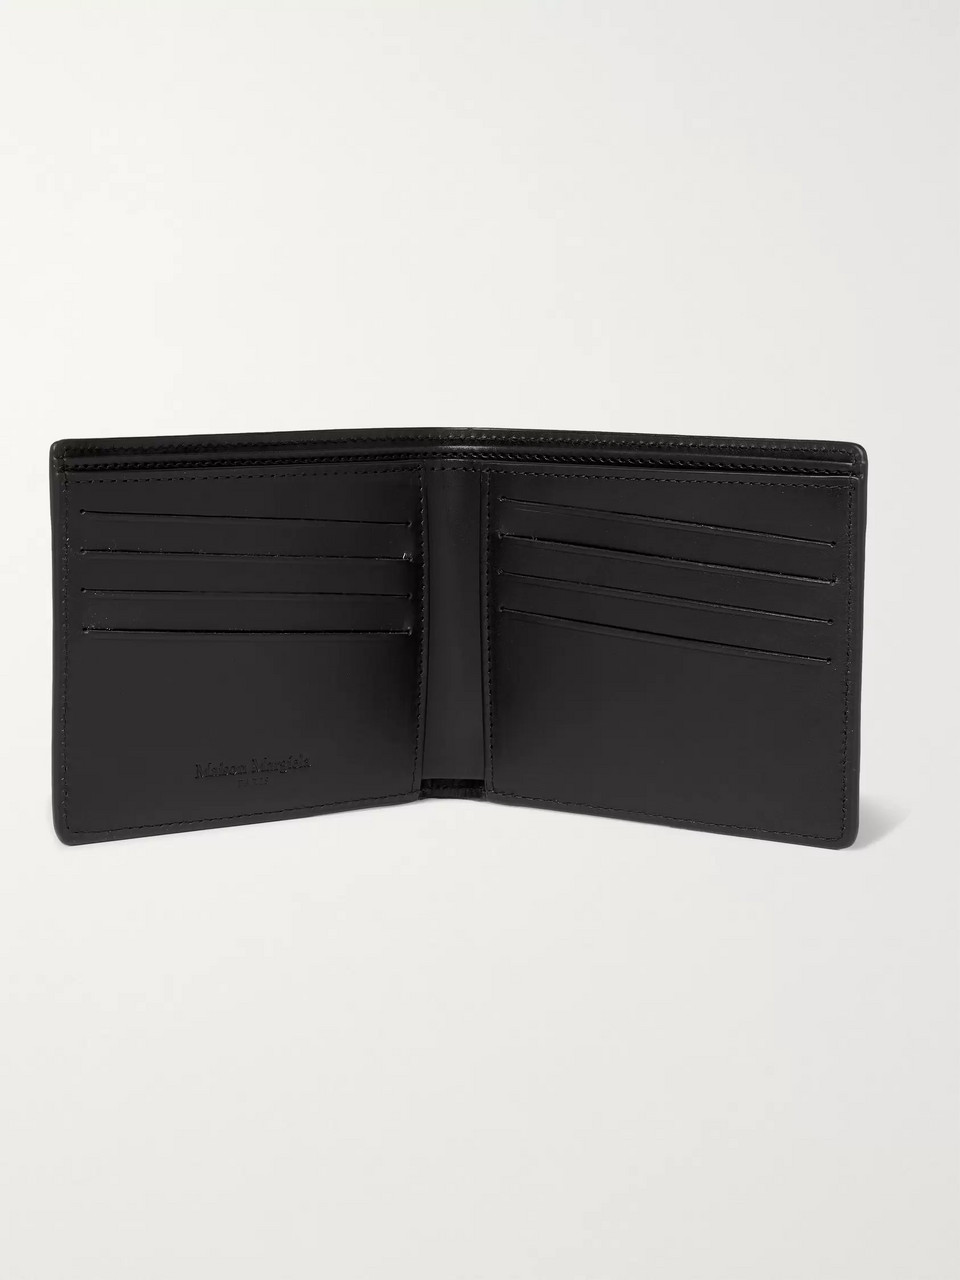 Maison Margiela Cutout Textured-Leather Billfold Wallet